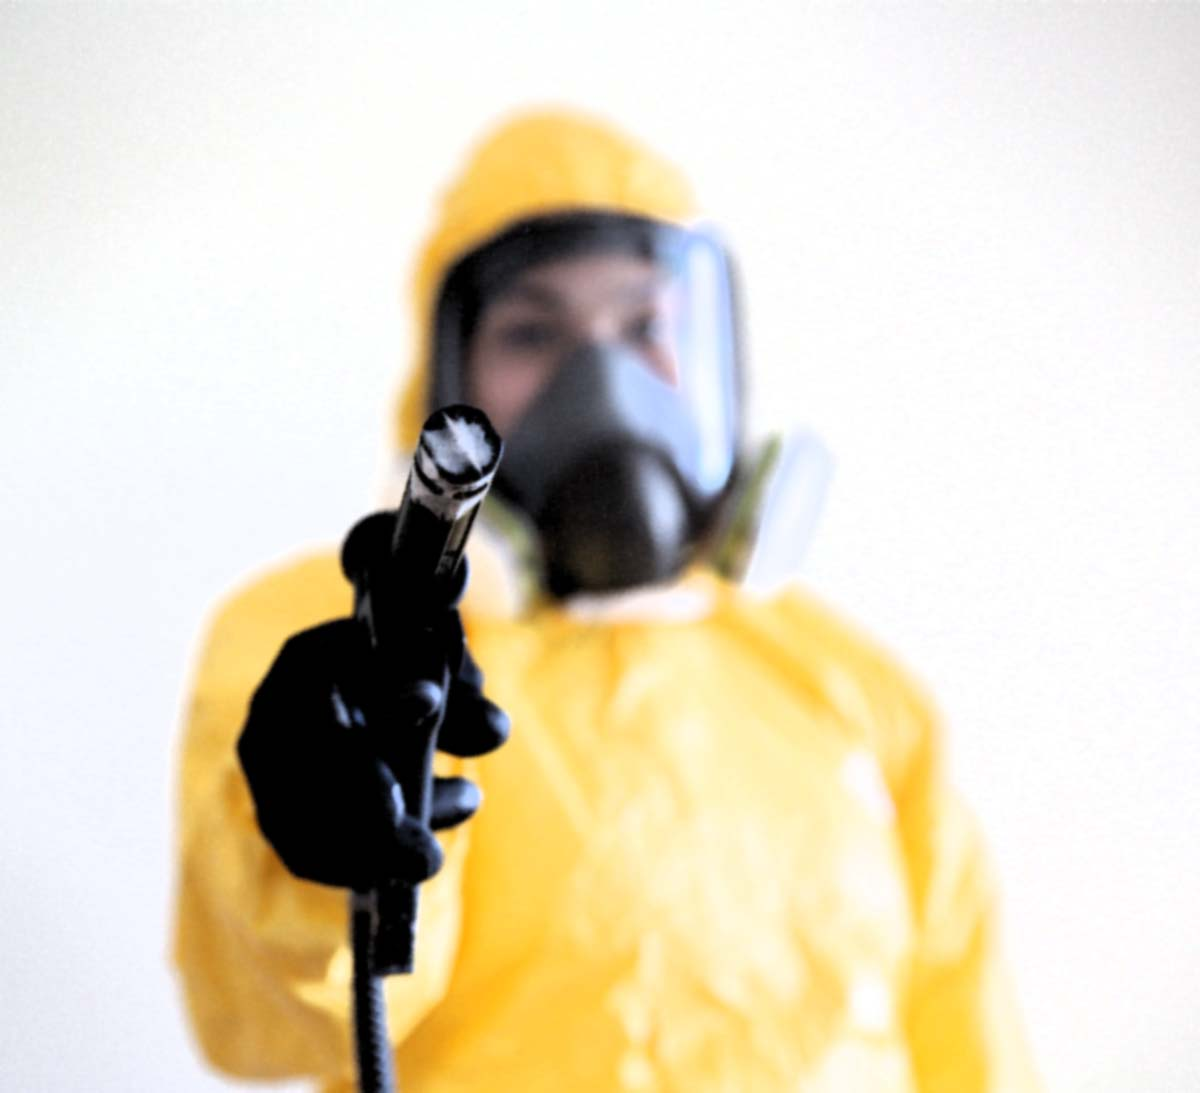 meth-decontamination-chemcare.jpg